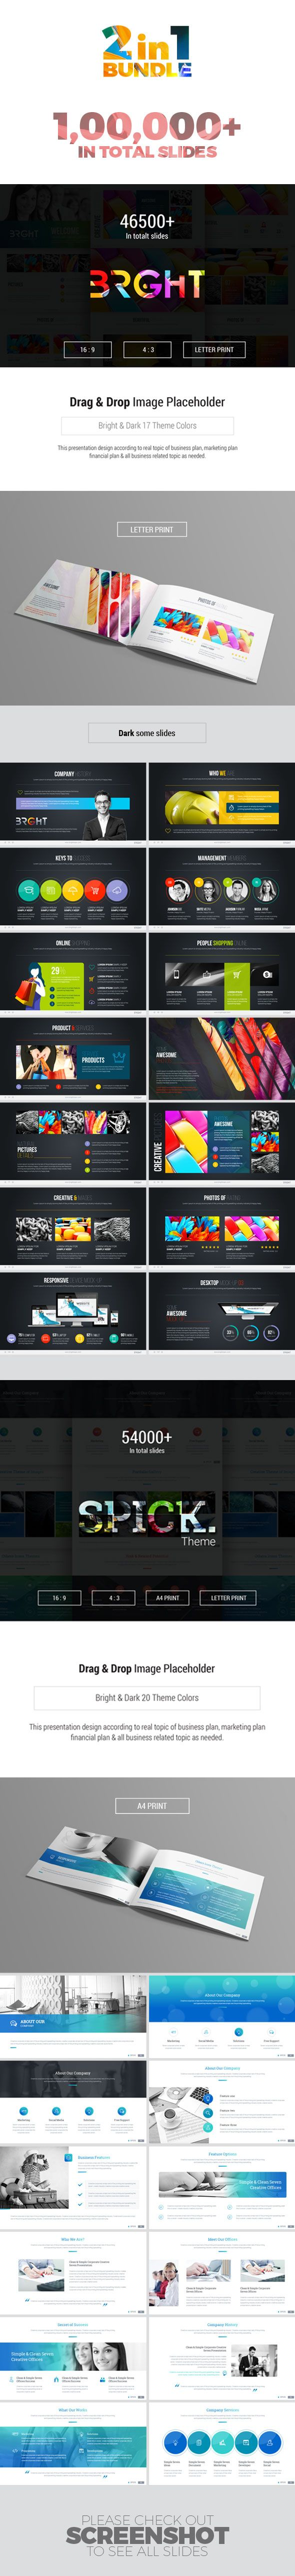 Powerpoint Template Bundle - 227+ Unique Custom Slides